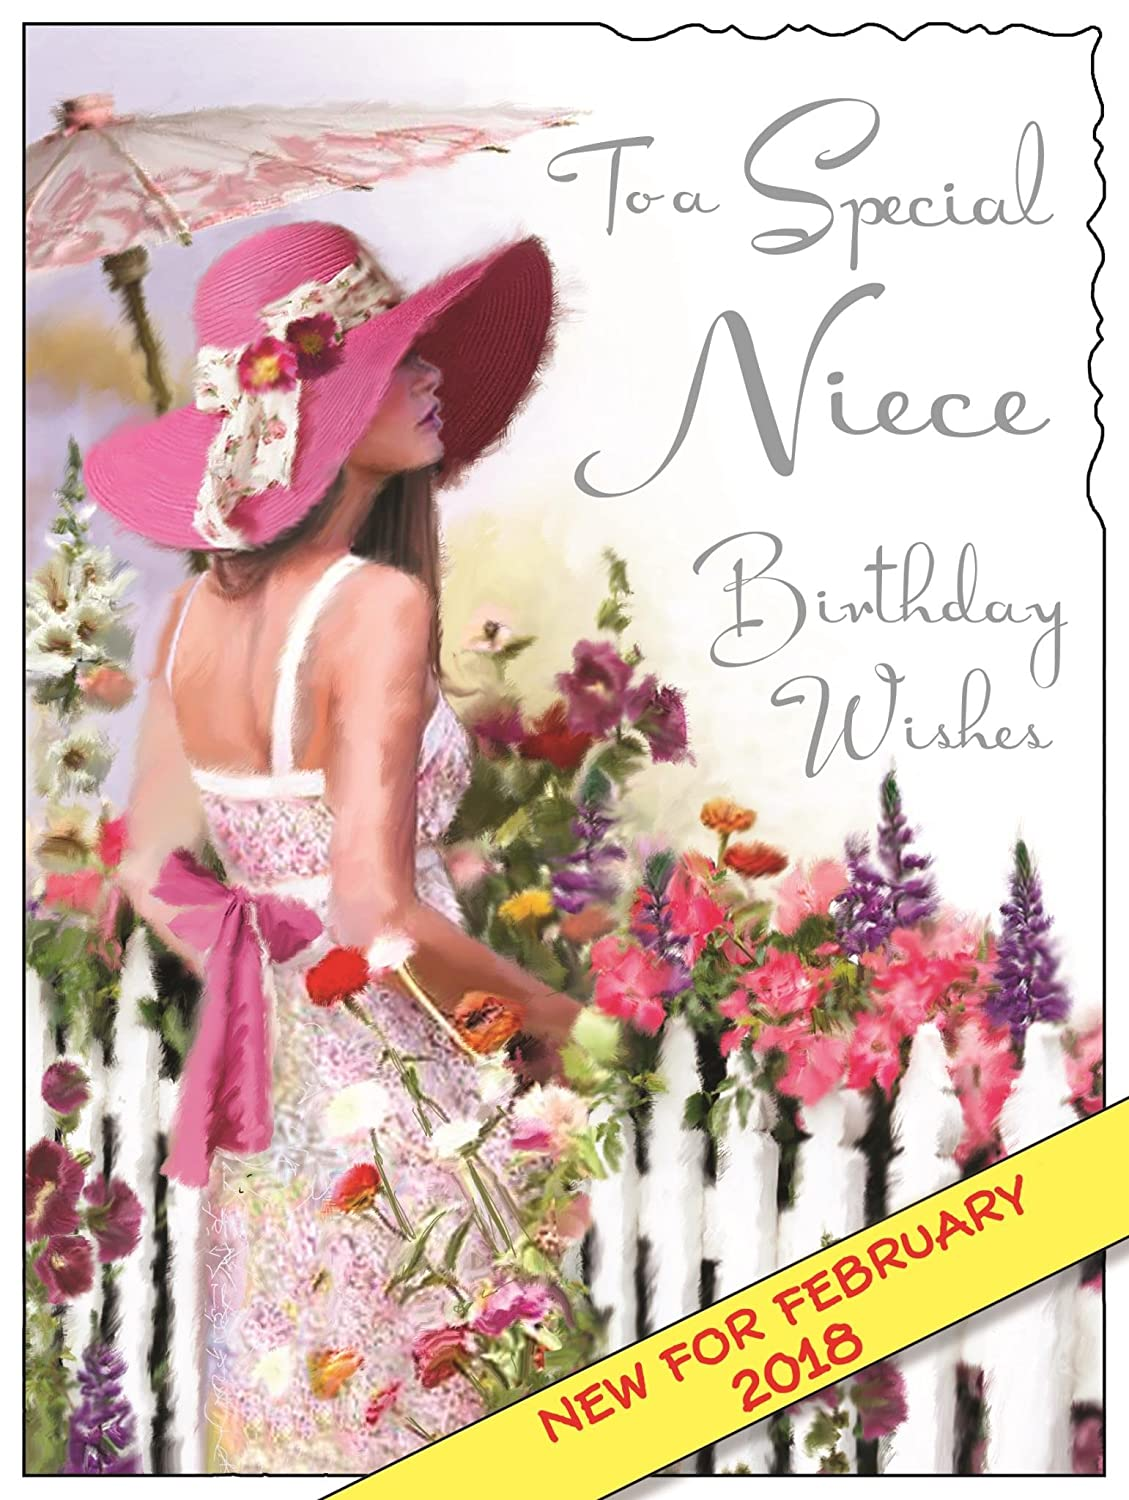 Birthday Card For Niece.Illustrated Niece Birthday Card Jj3599 Picket Fence From The Velvet Range Embossed With A Silver Foil Flitter Finish